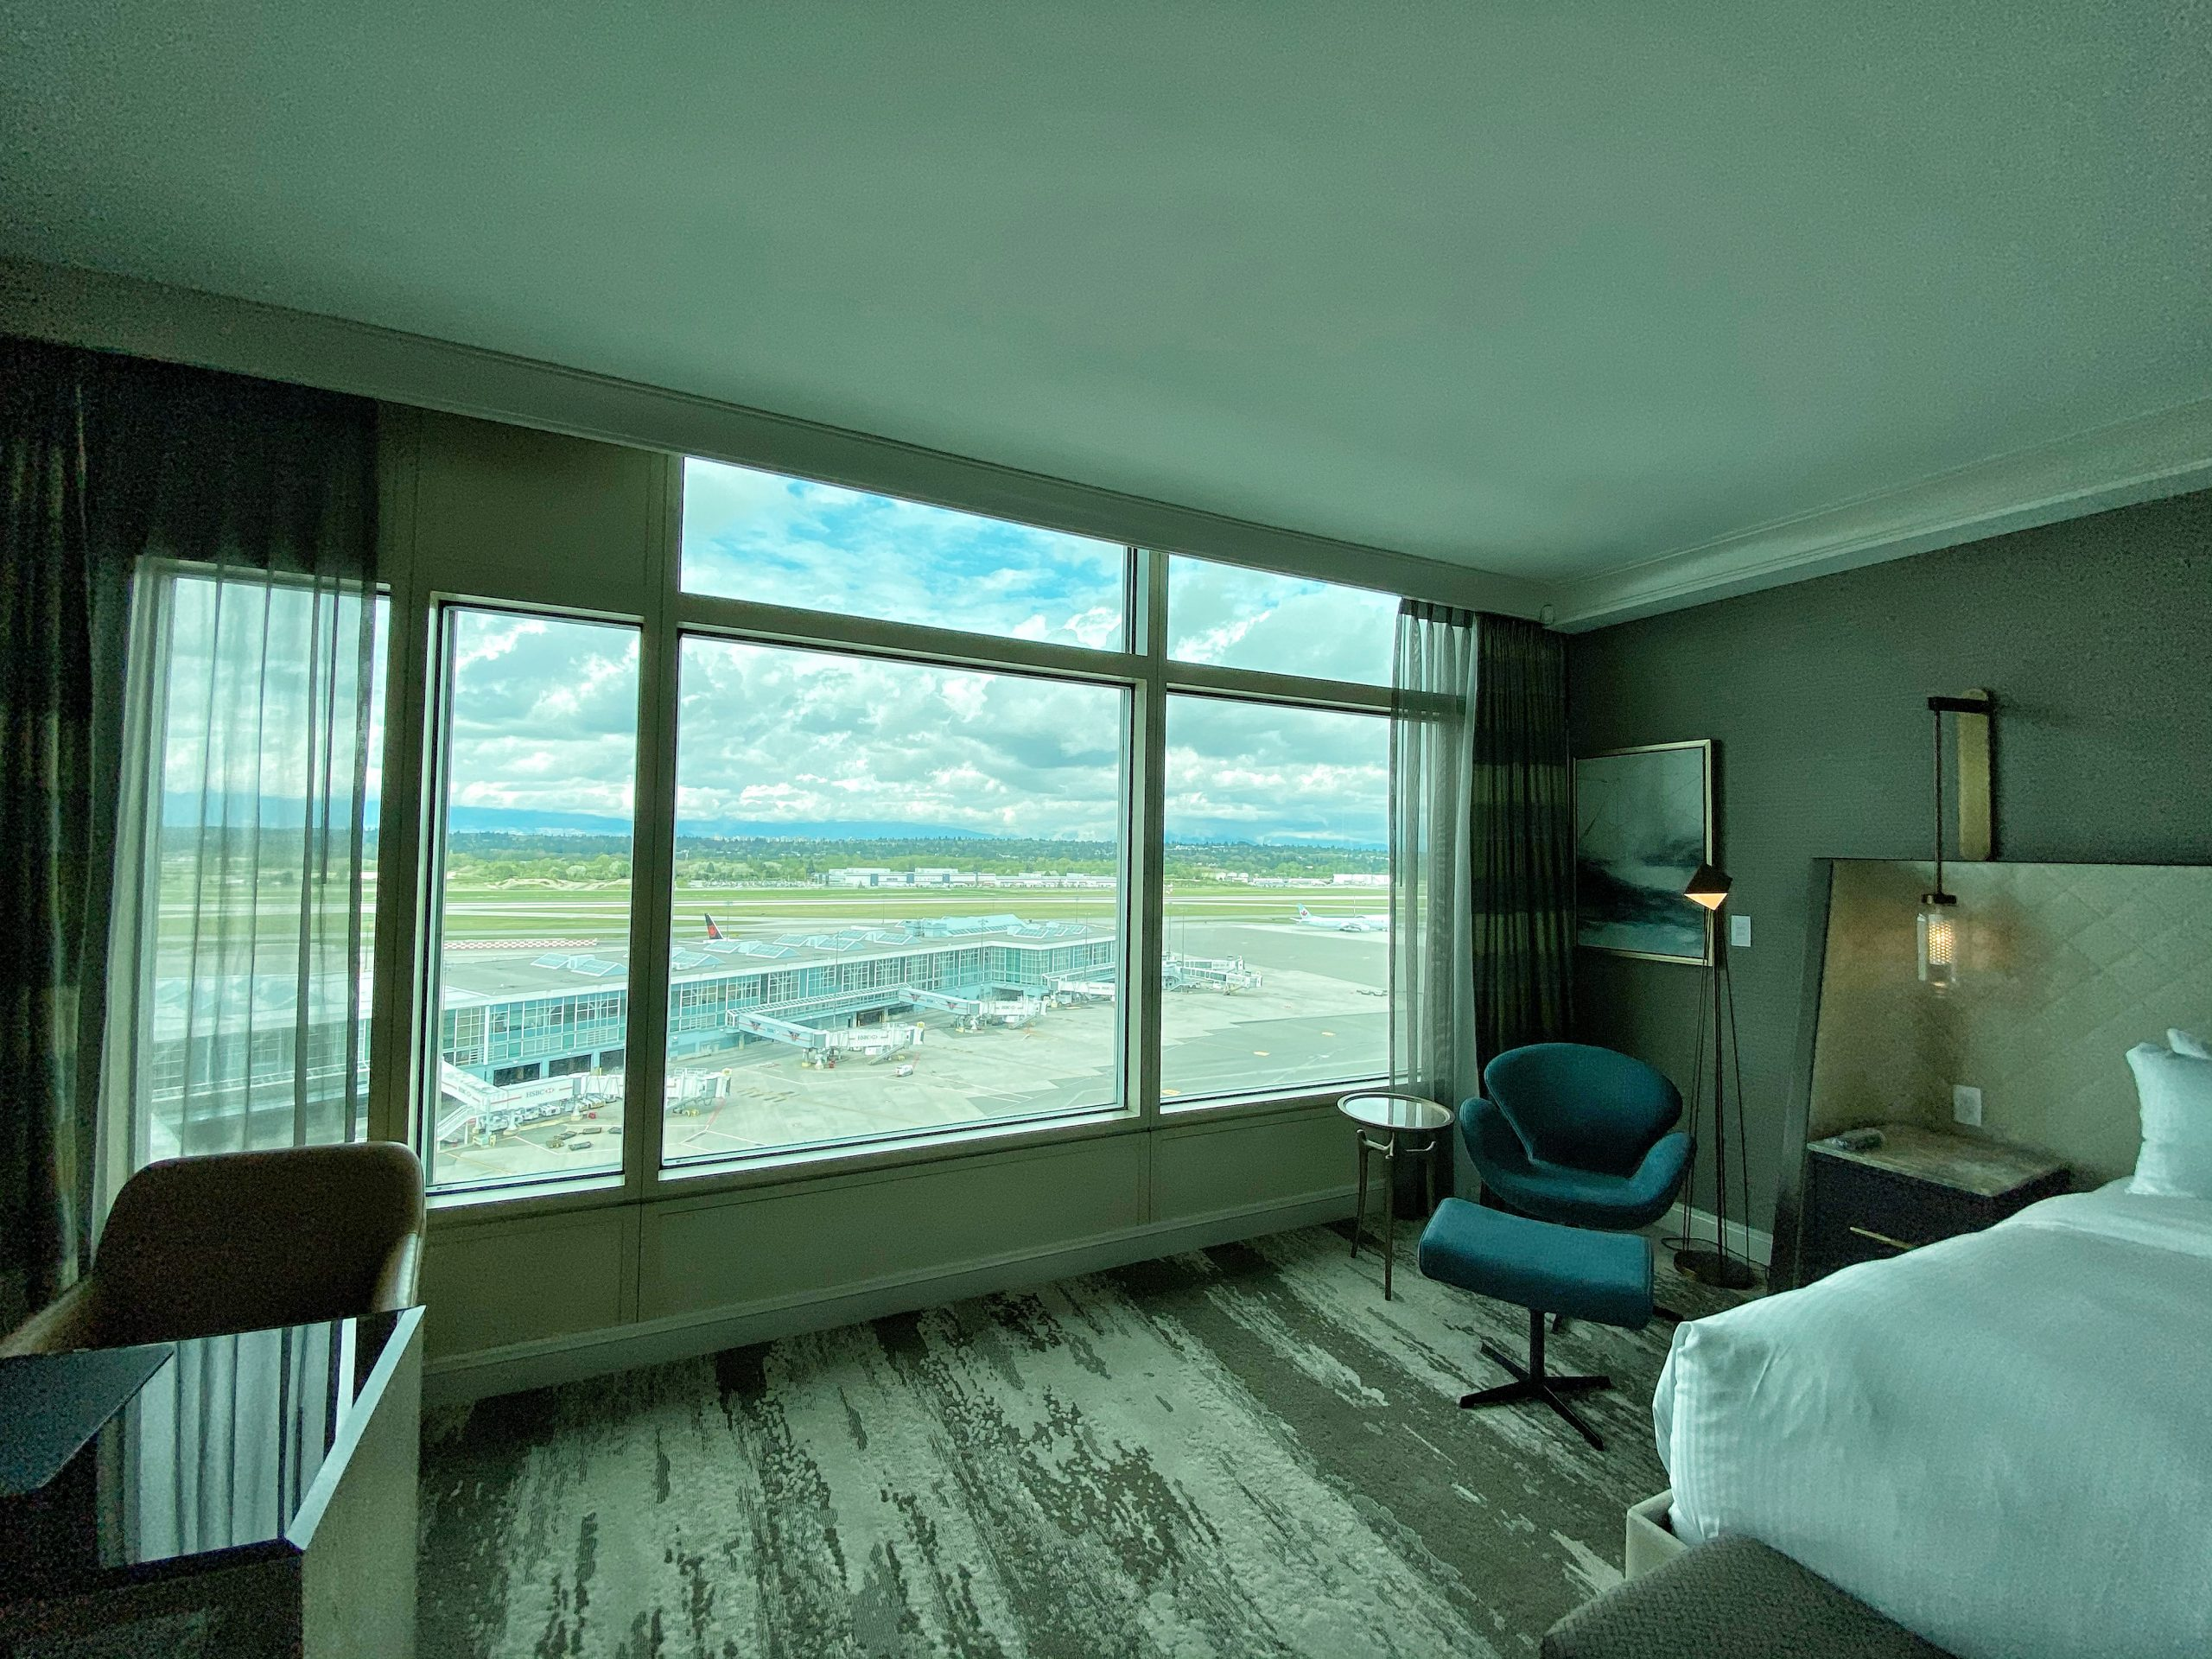 The north-facing view of a Fairmont Gold room at teh Fairmont Vancouver Airport Hotel